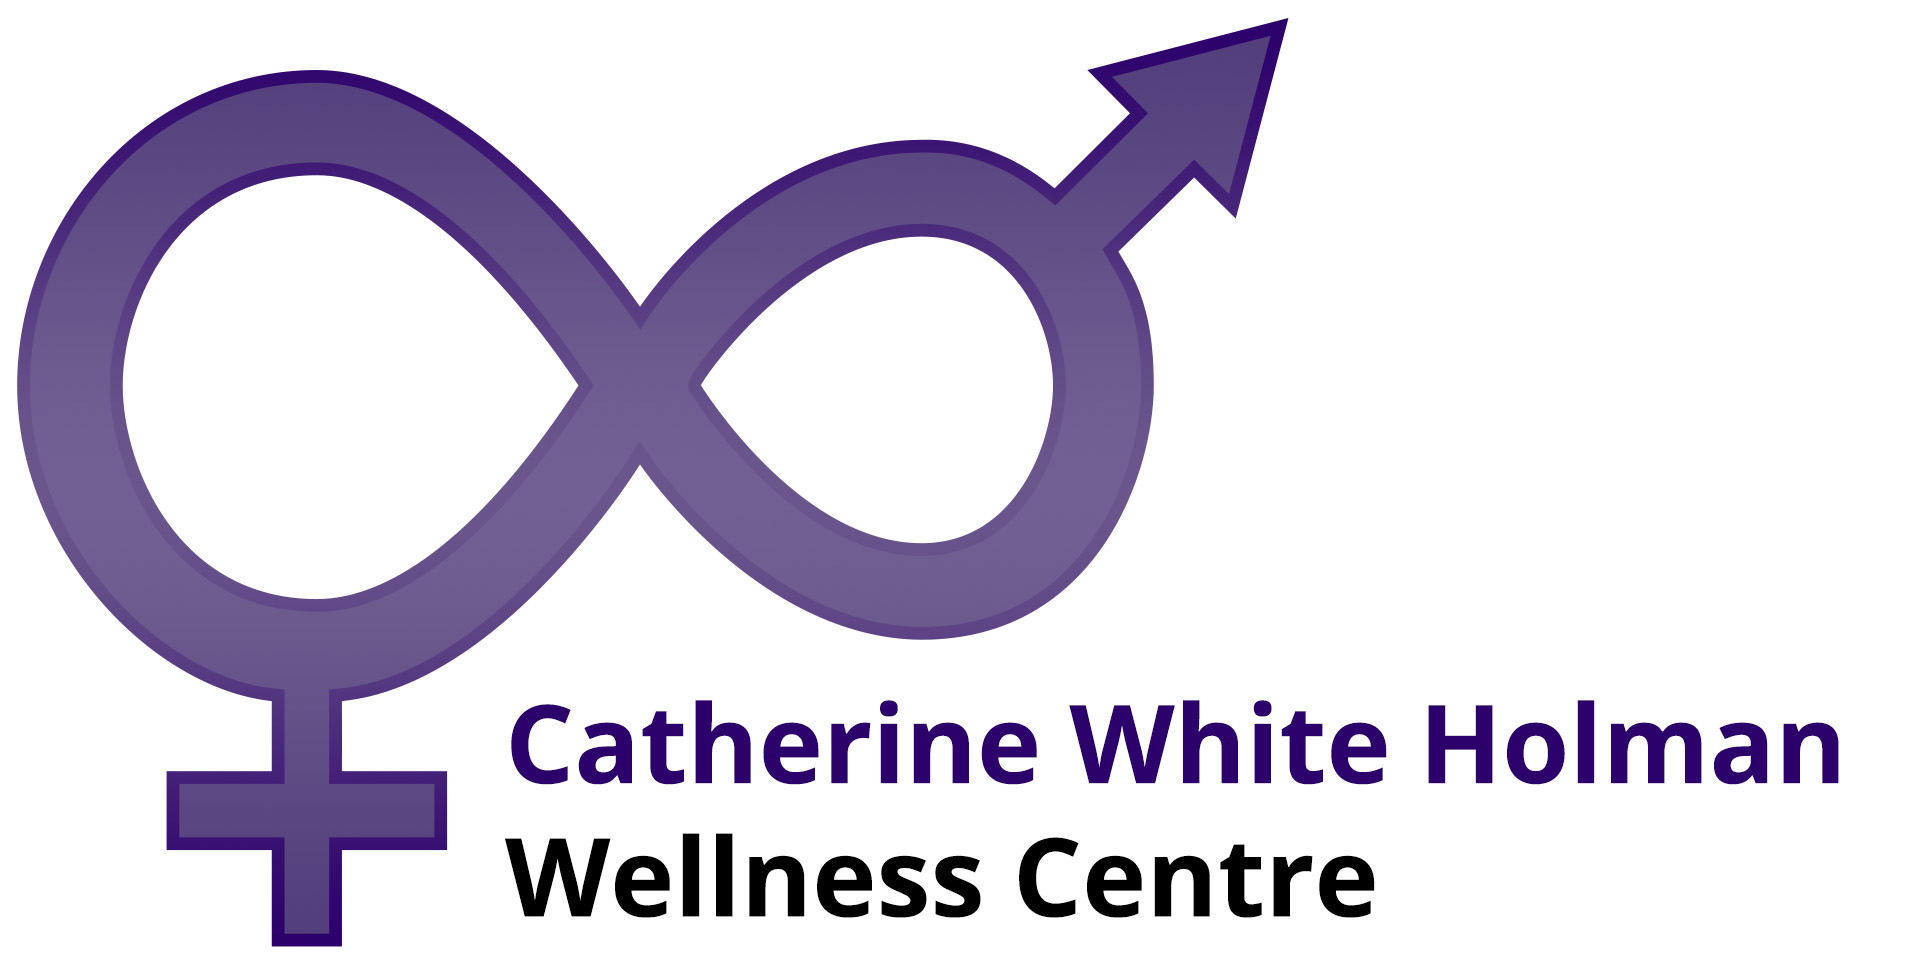 Catherine White Holman Wellness Centre